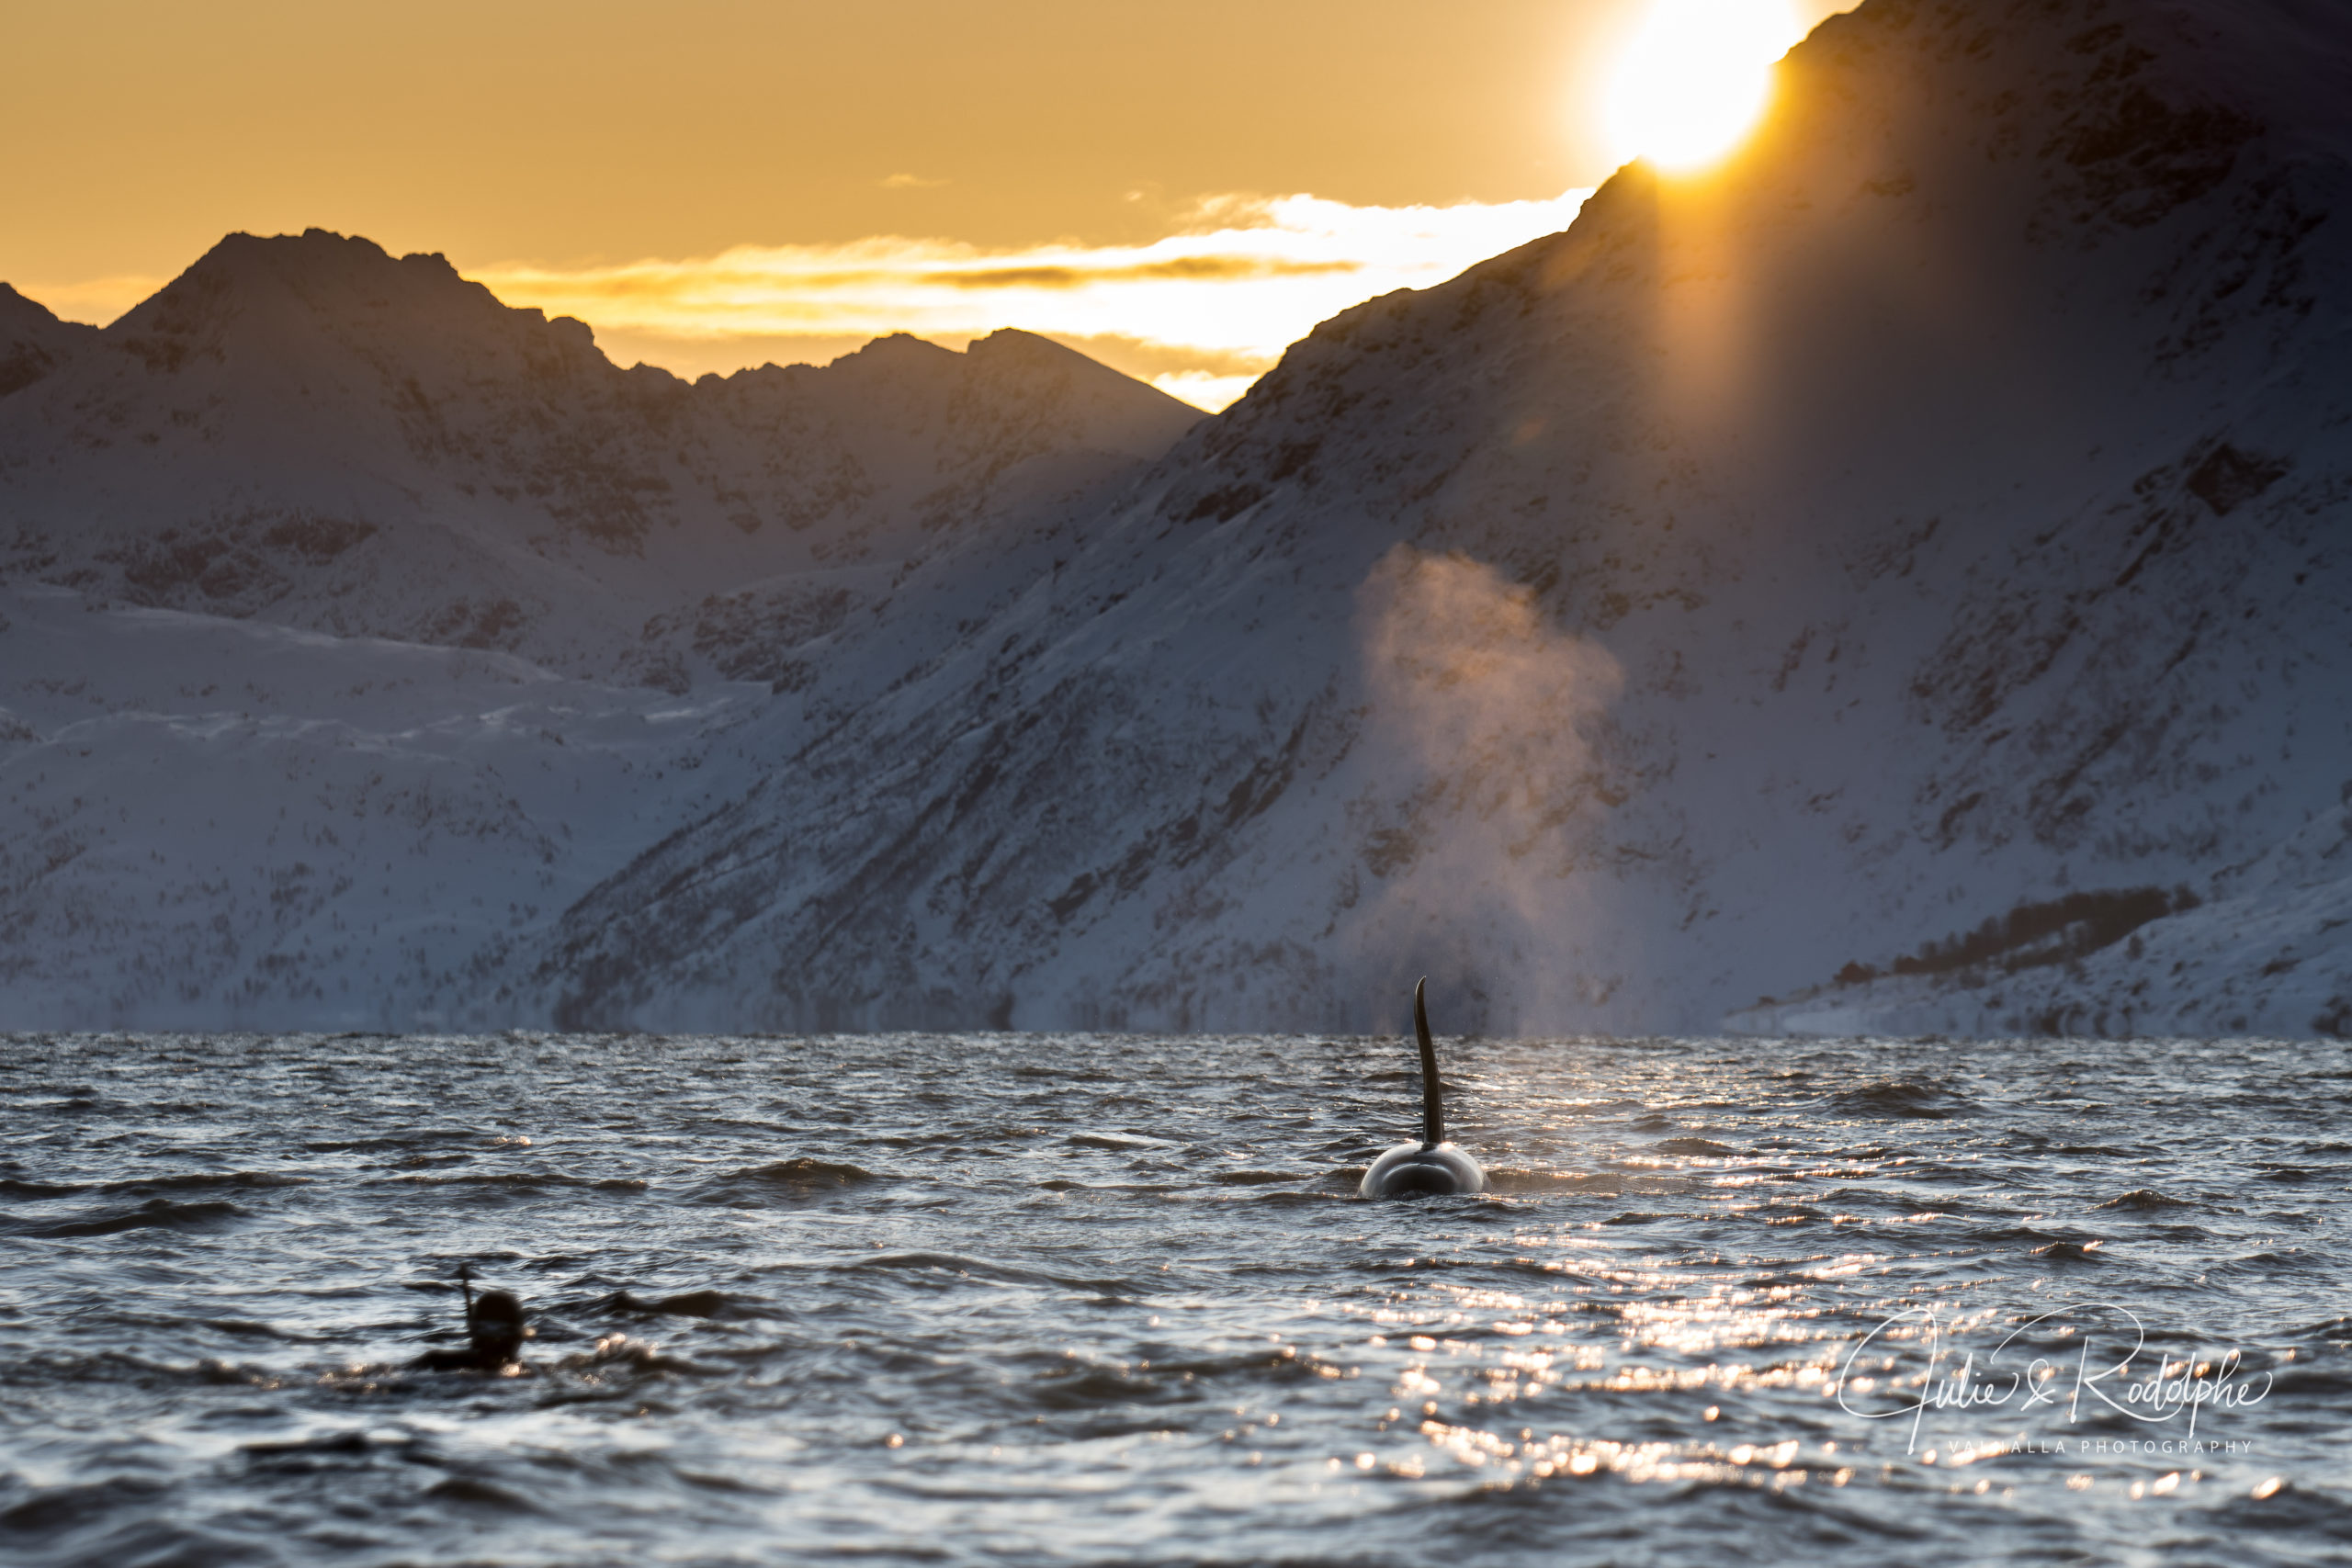 big orca going towards diver with sun behind the mountains